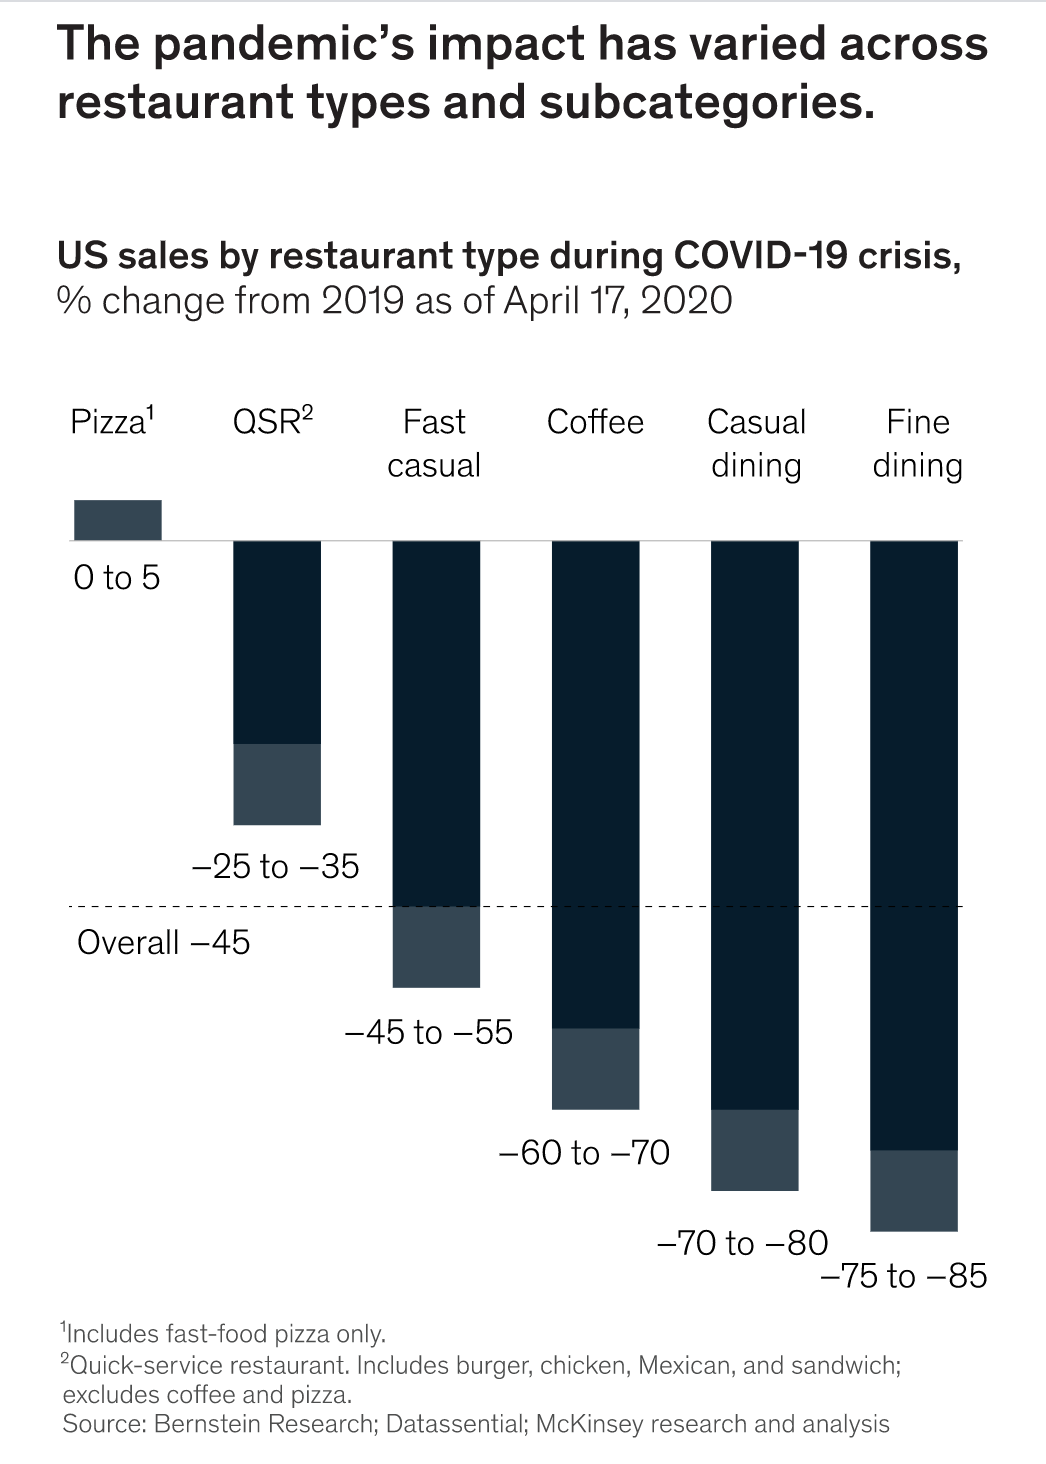 Graph of US sales by restaurant type during COVID-19 crisis